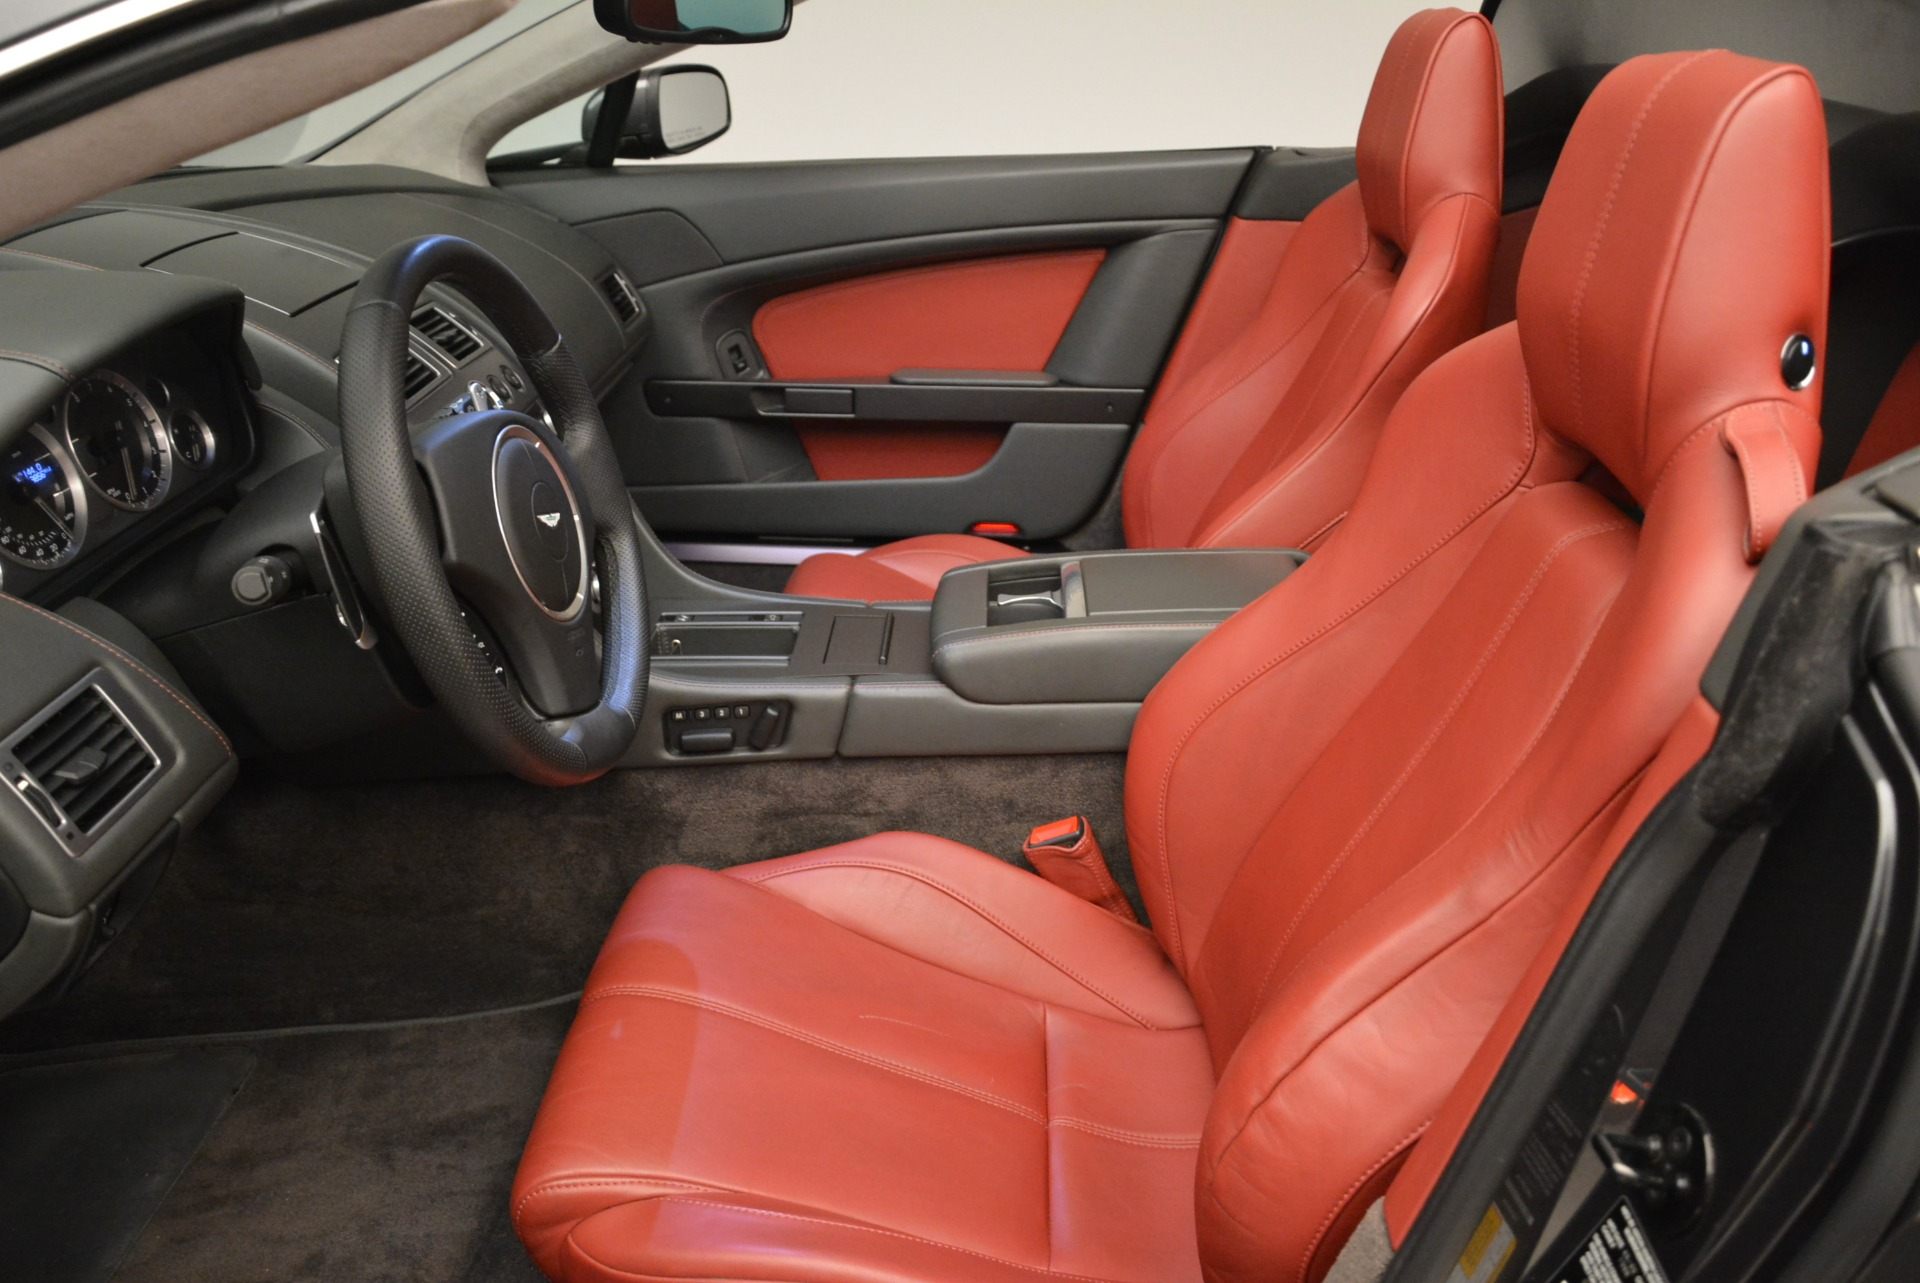 Used 2009 Aston Martin V8 Vantage Roadster For Sale In Greenwich, CT. Alfa Romeo of Greenwich, 7333 2123_p25